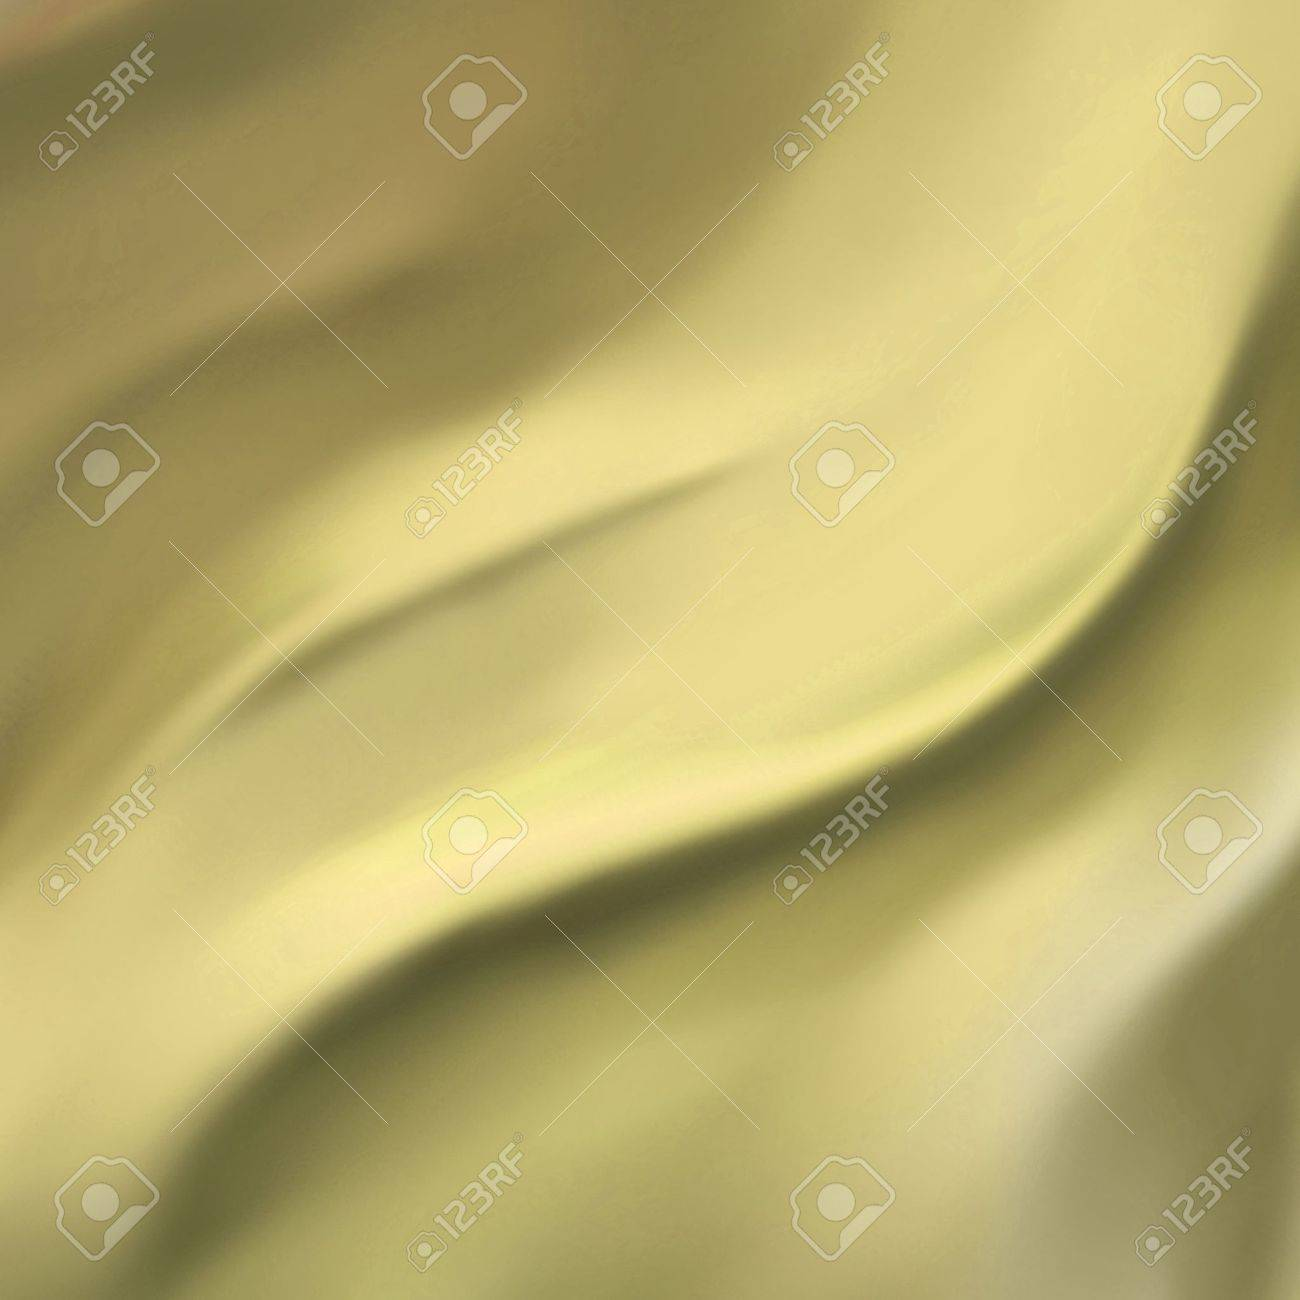 elegant gold background abstract cloth or liquid wave illustration of wavy folds of silk texture satin or velvet material or yellow luxurious background wallpaper design of pale curve gold material Stock Illustration - 15308253